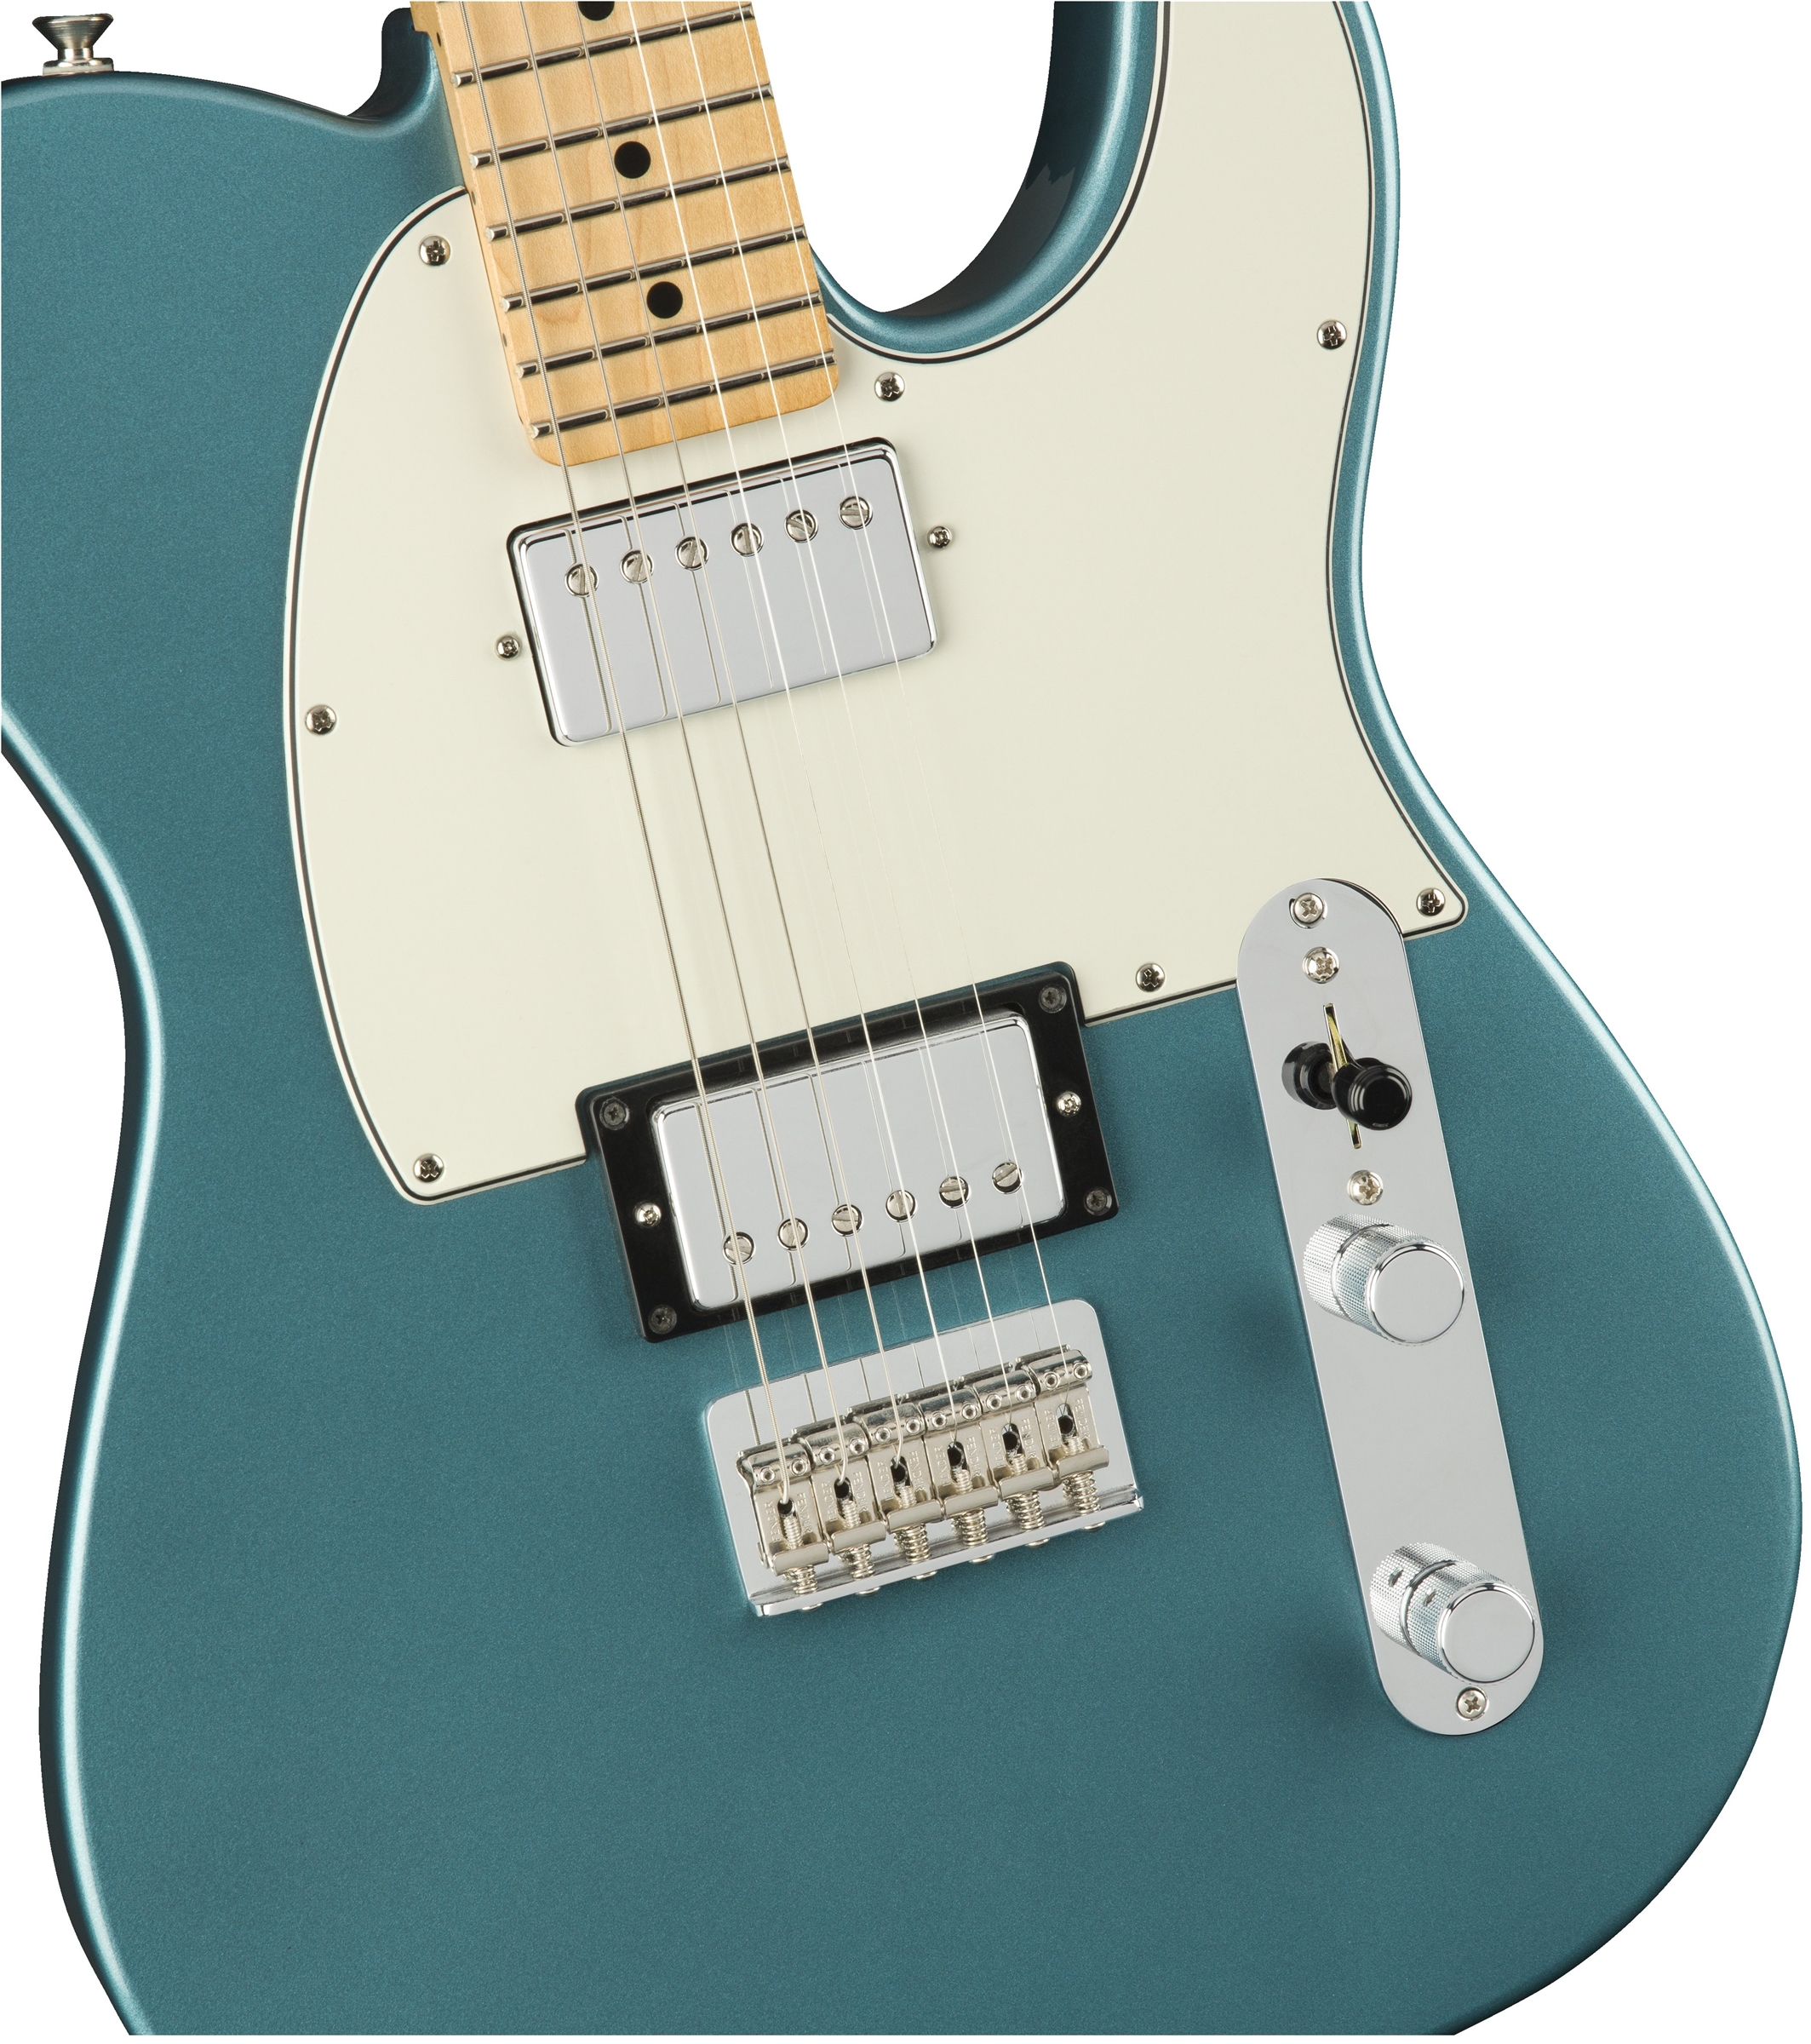 Fender Telecaster Hh >> Player Telecaster Hh Electric Guitars